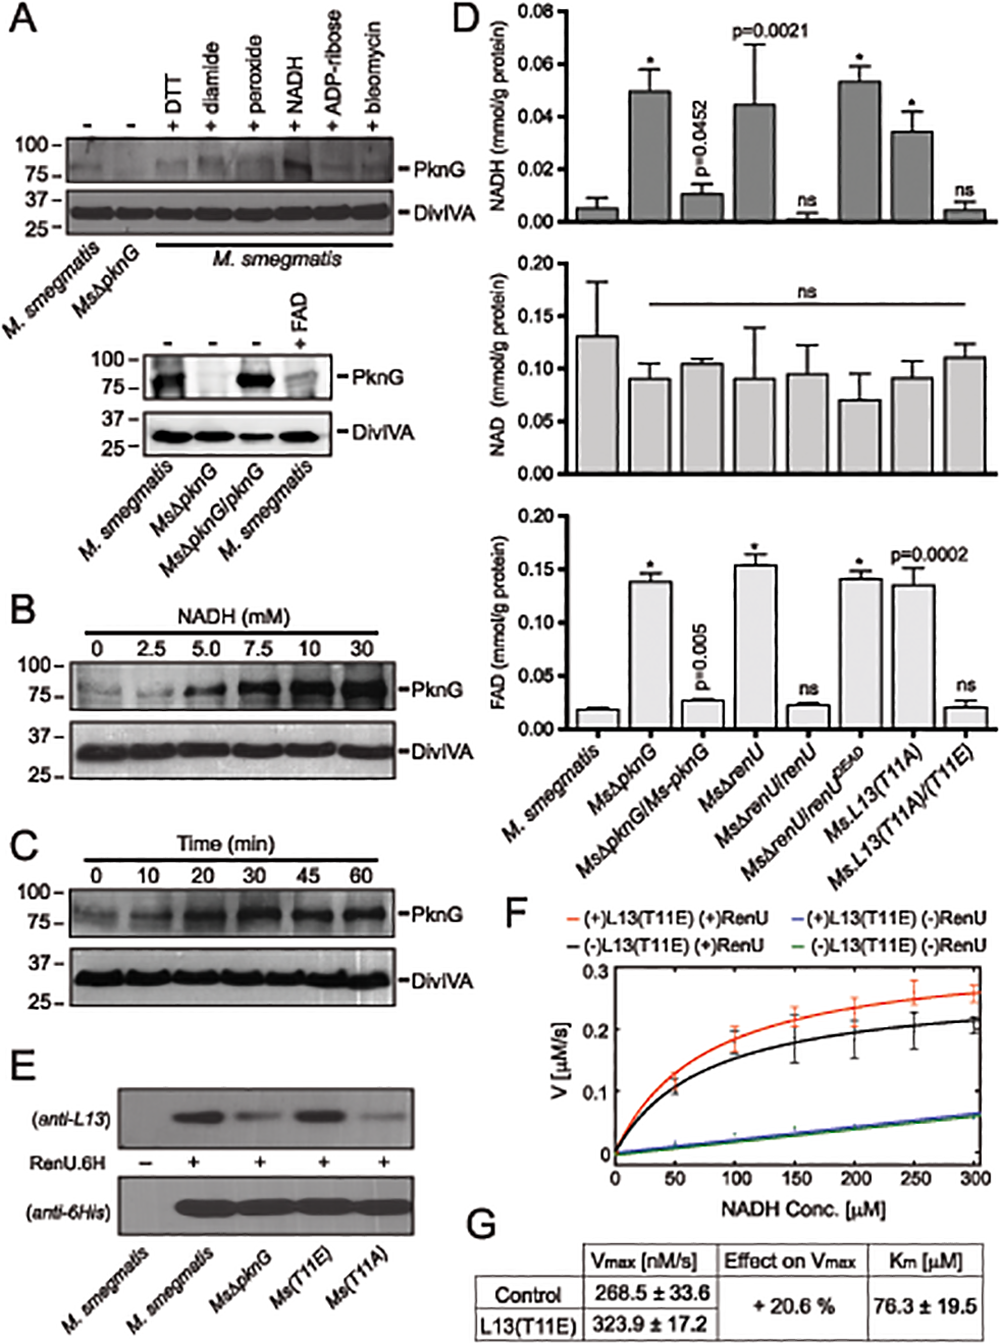 Correlation of NADH and RHOCS, and role of L13 phosphorylation by PknG.